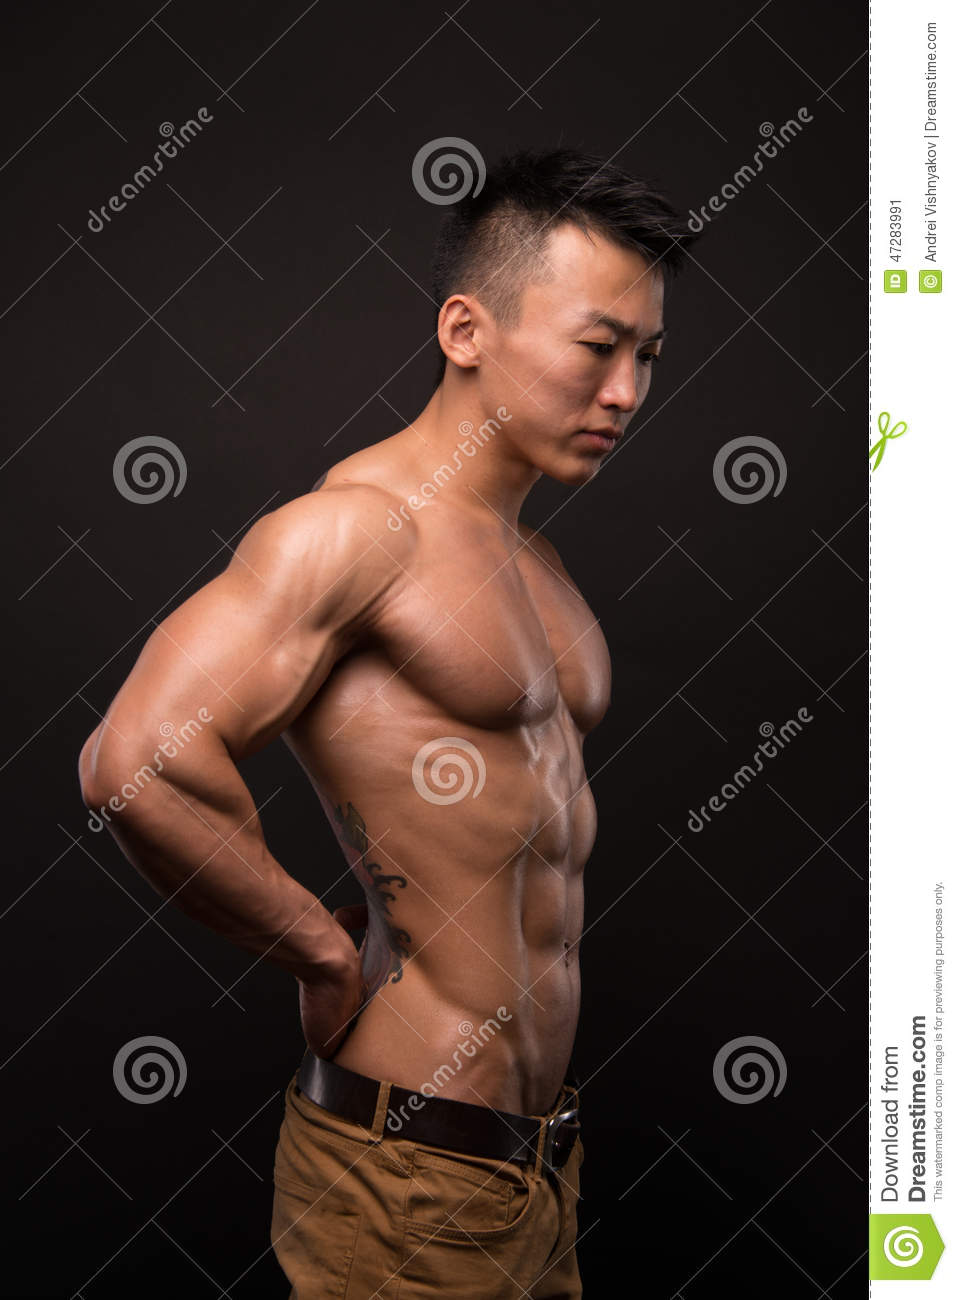 Korean Gay Male 60